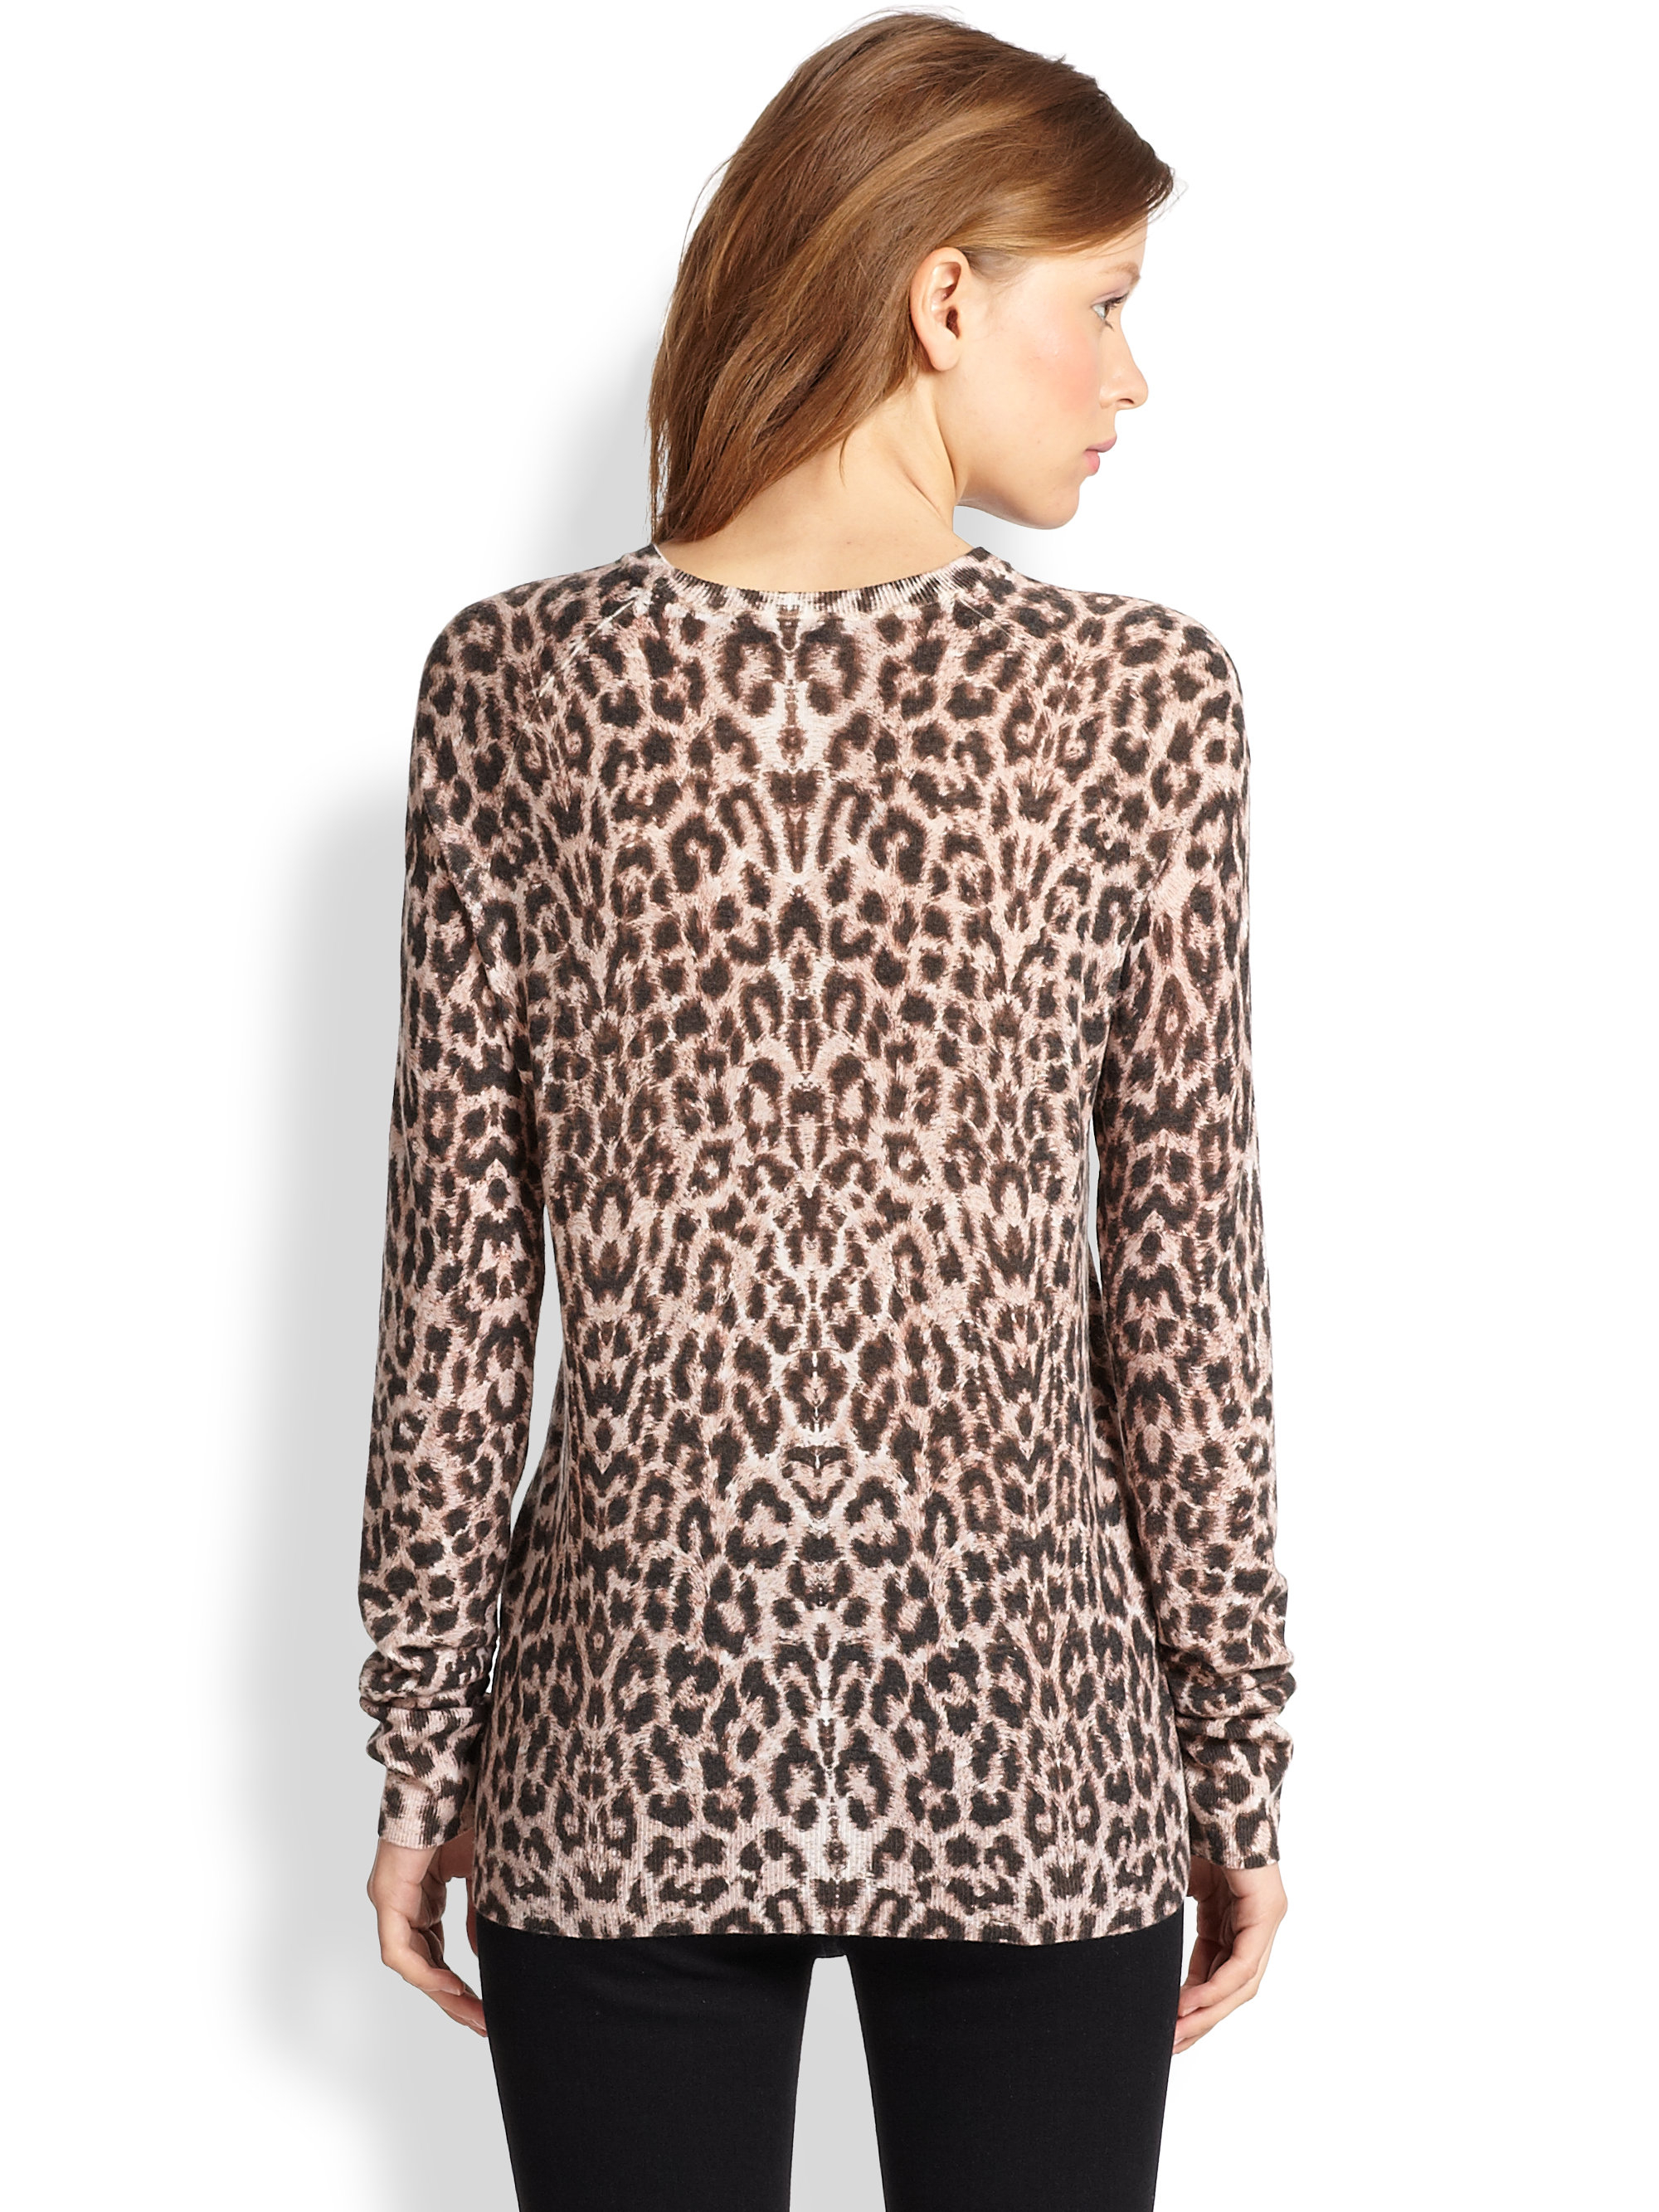 Equipment Sloane Leopard-Print Wool & Cashmere Sweater | Lyst